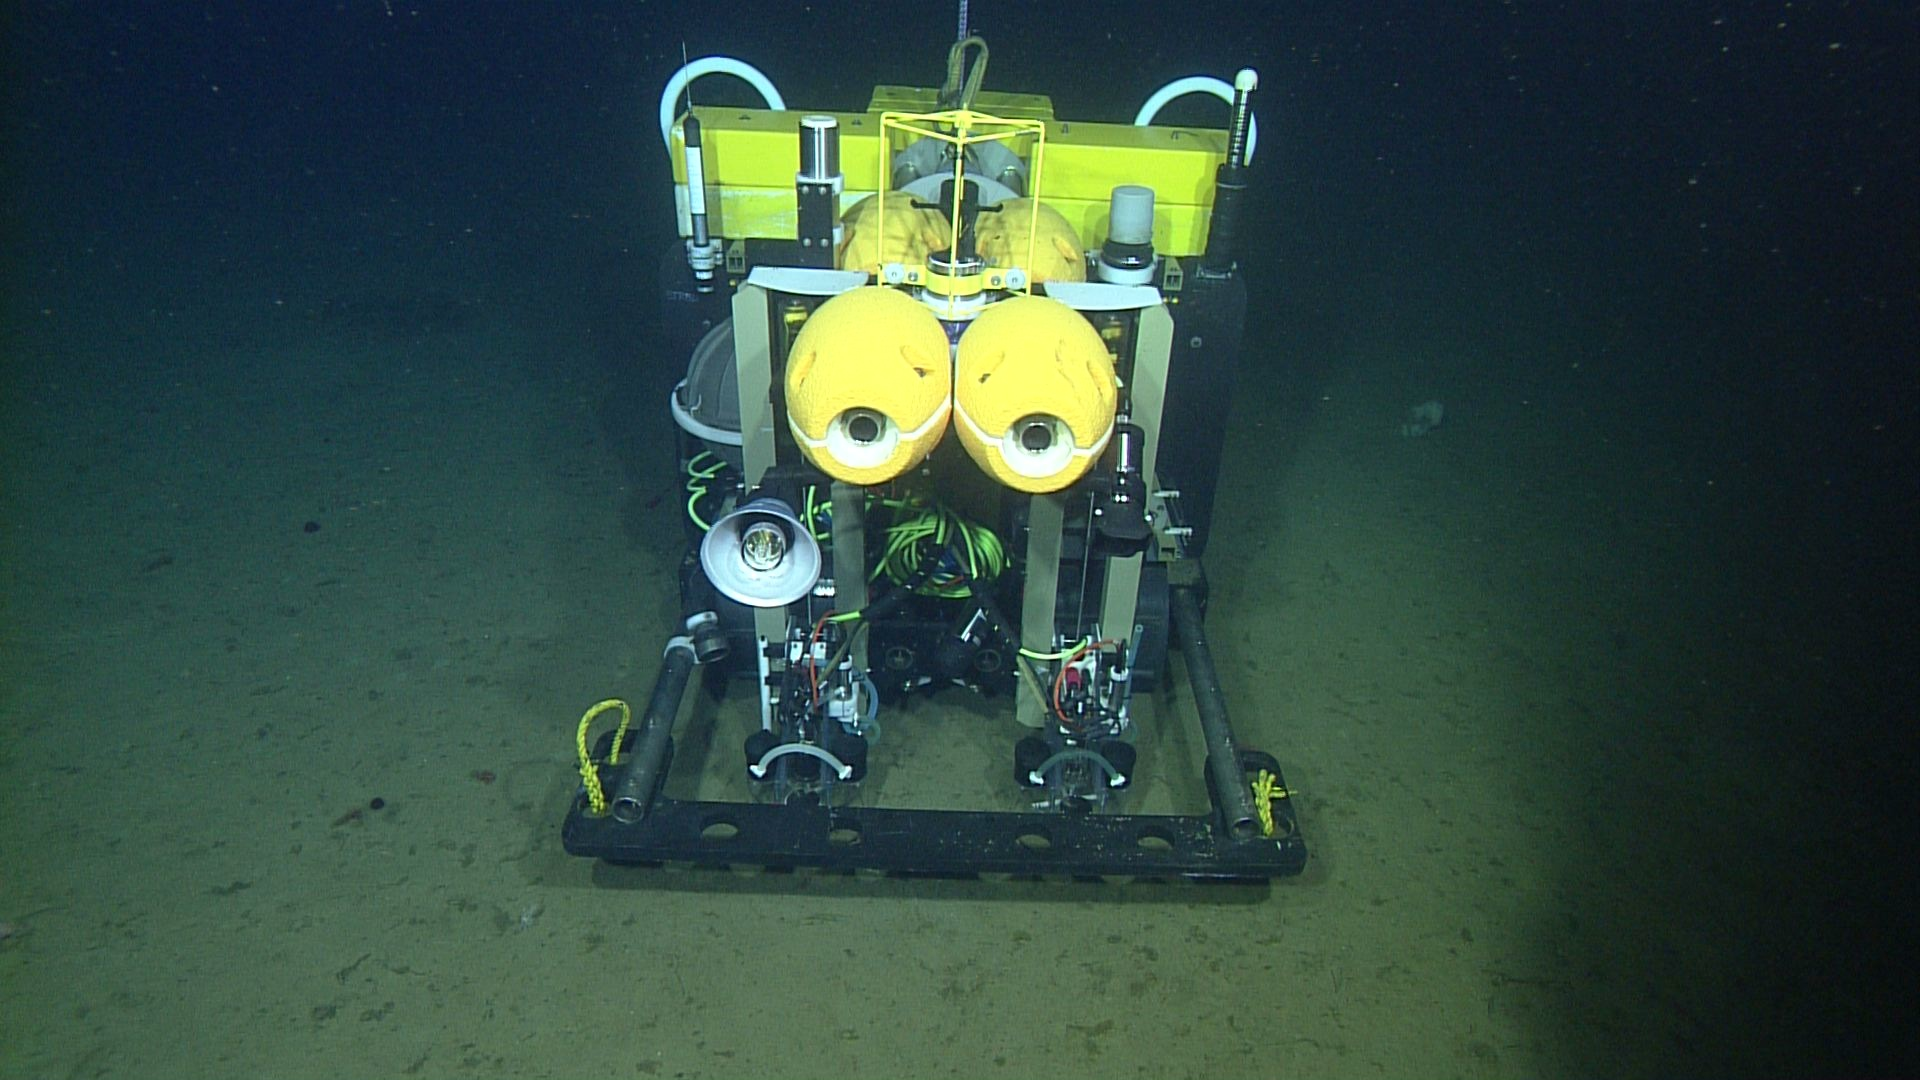 The Benthic Rover facing forward on the seafloor